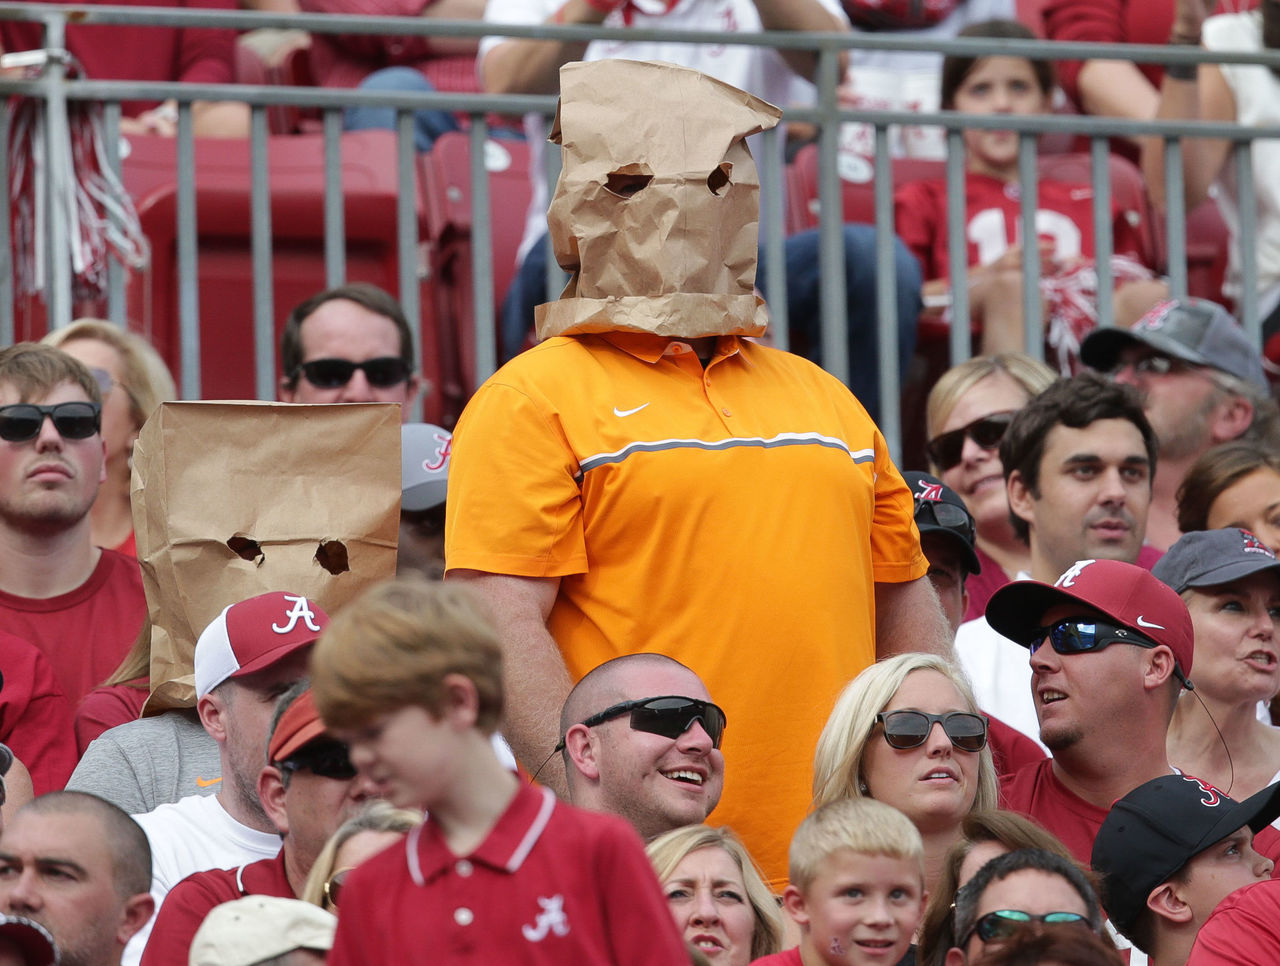 Cropped 2017 10 21t213221z 57307499 nocid rtrmadp 3 ncaa football tennessee at alabama  1